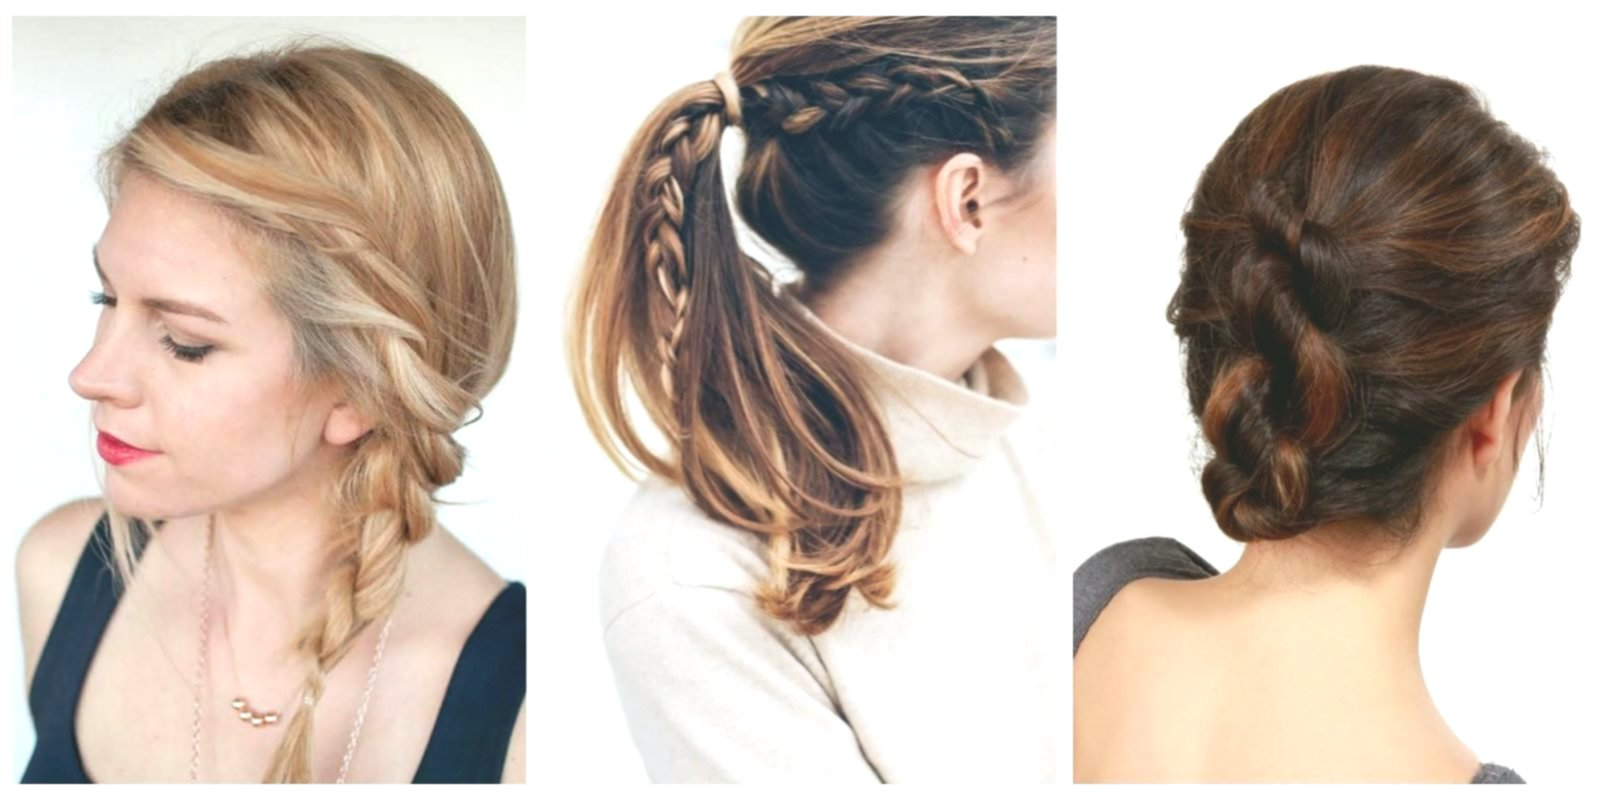 awful cool hairstyles long hair 2018 décor-Awesome Hairstyles Long Hair 2018 Decor